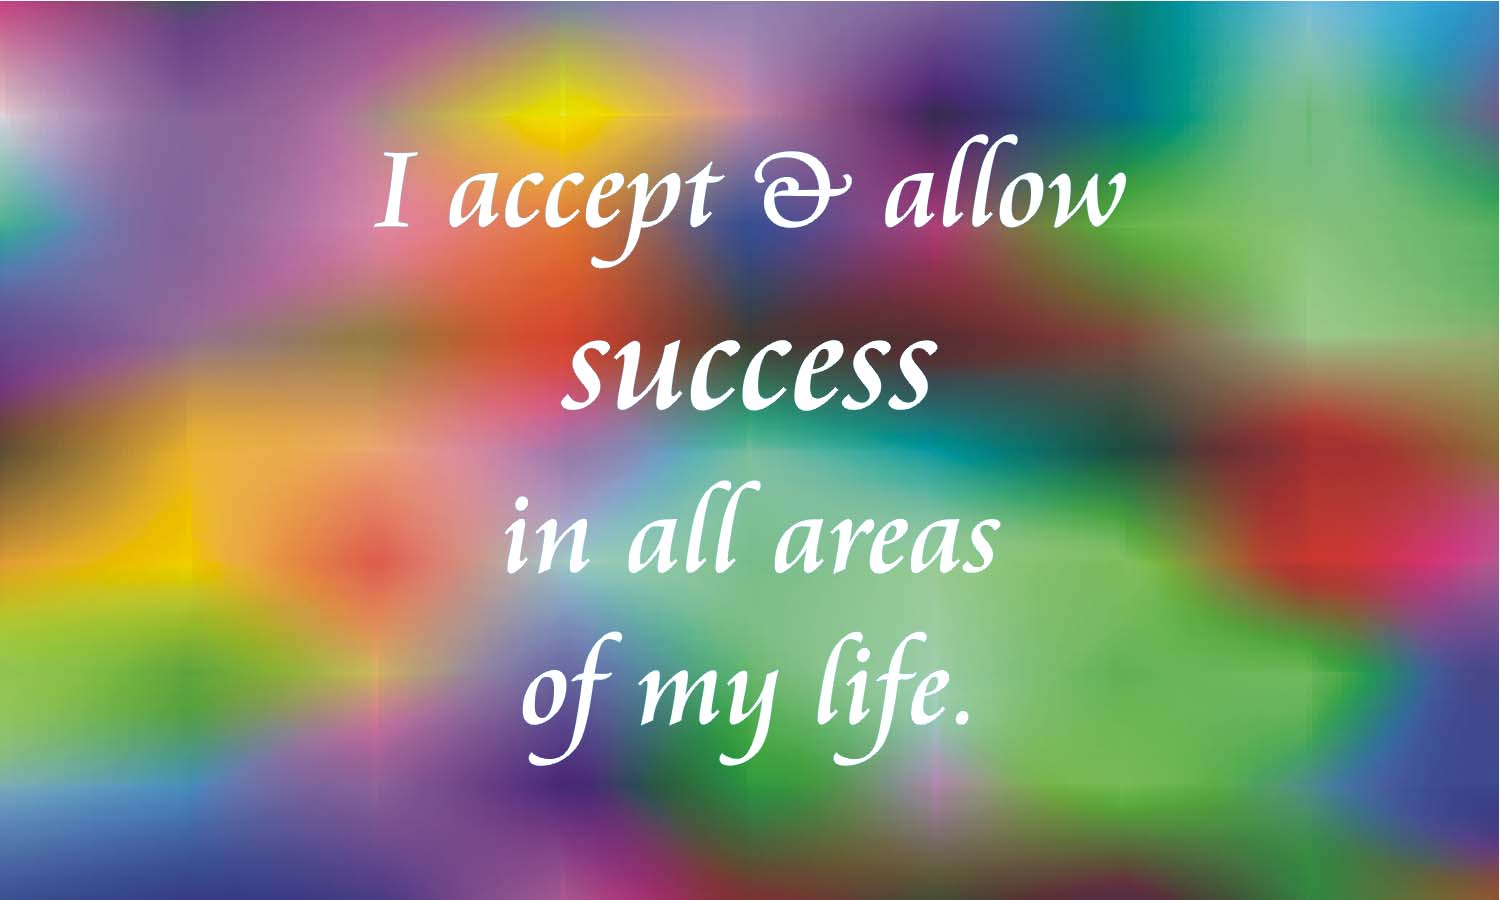 Law Of Attraction - Create Resistance Or Creative Acceptance - FrizeMedia